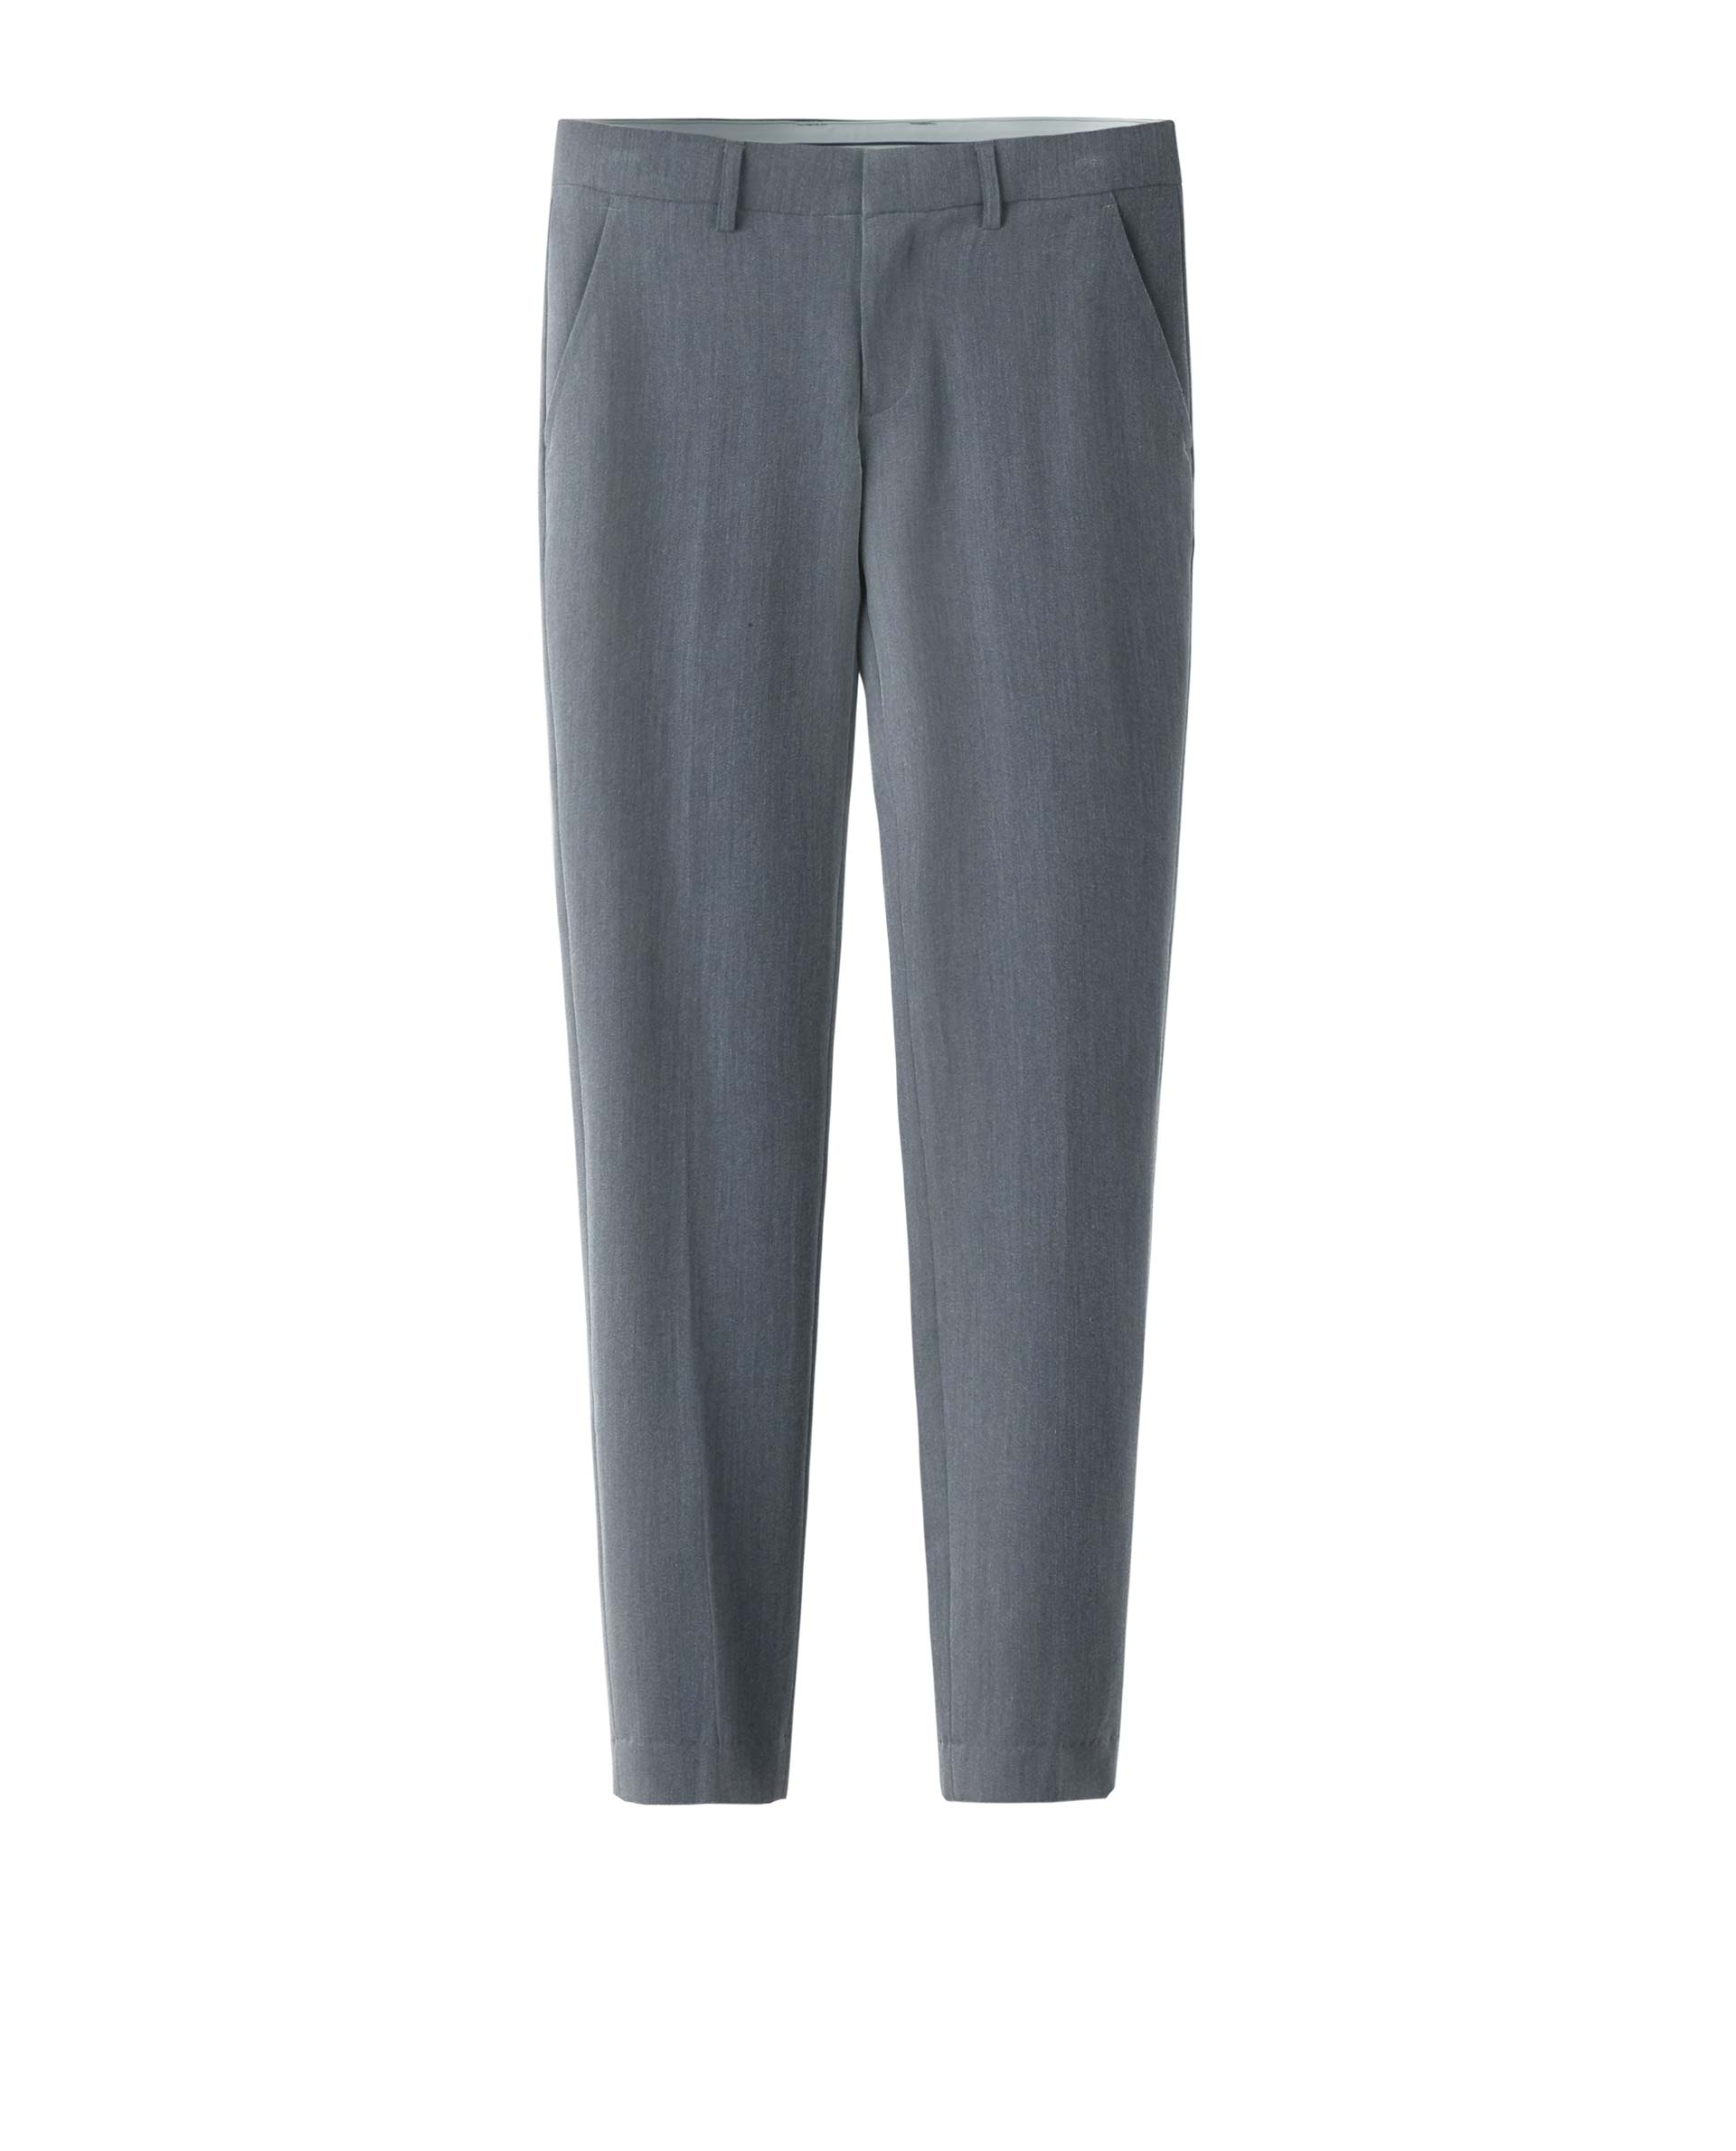 SMART TROUSERS (CHARCOAL)